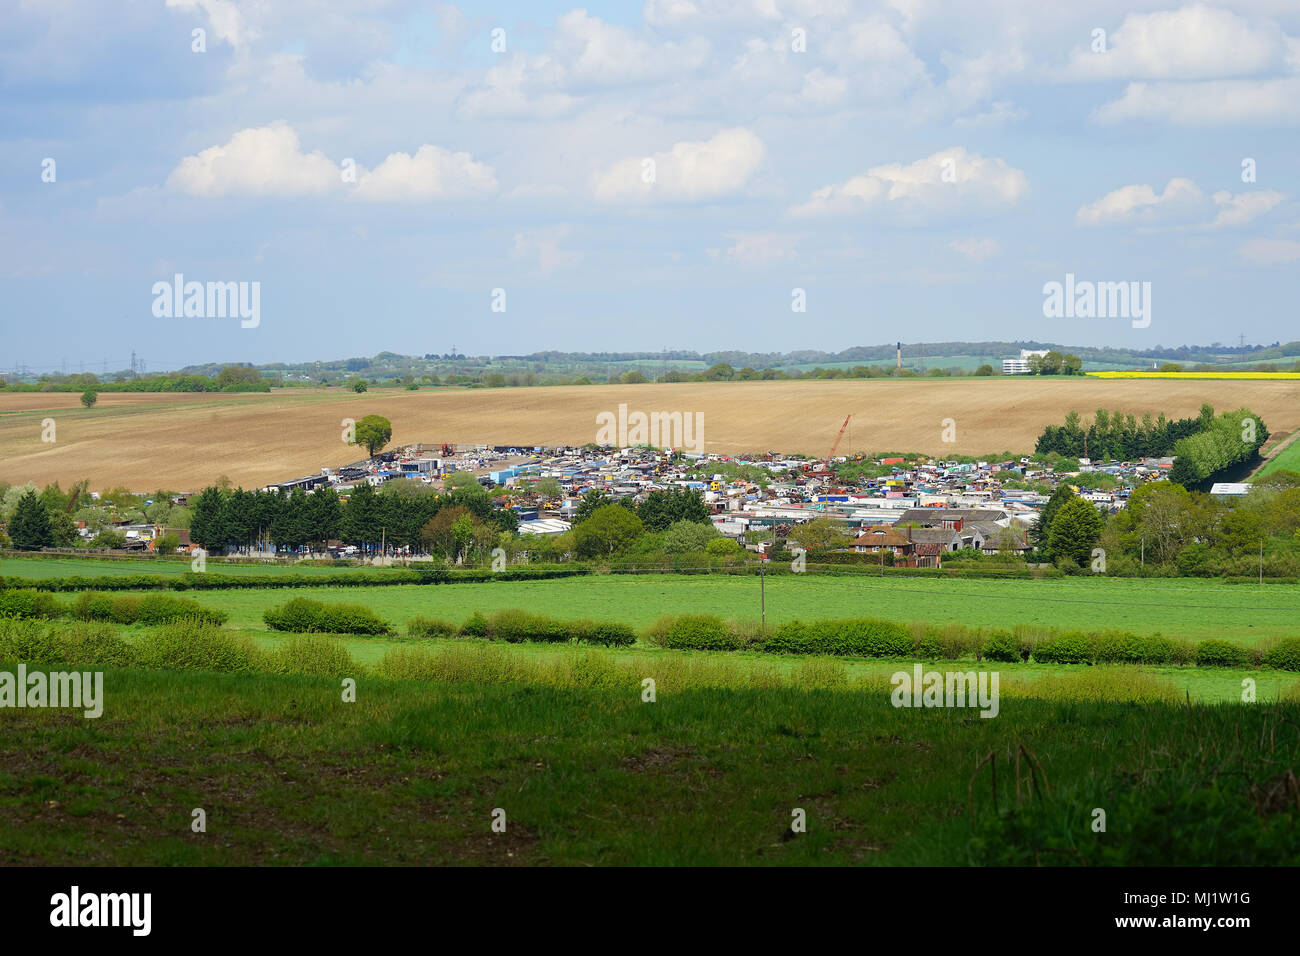 A country scrap yard - Stock Image